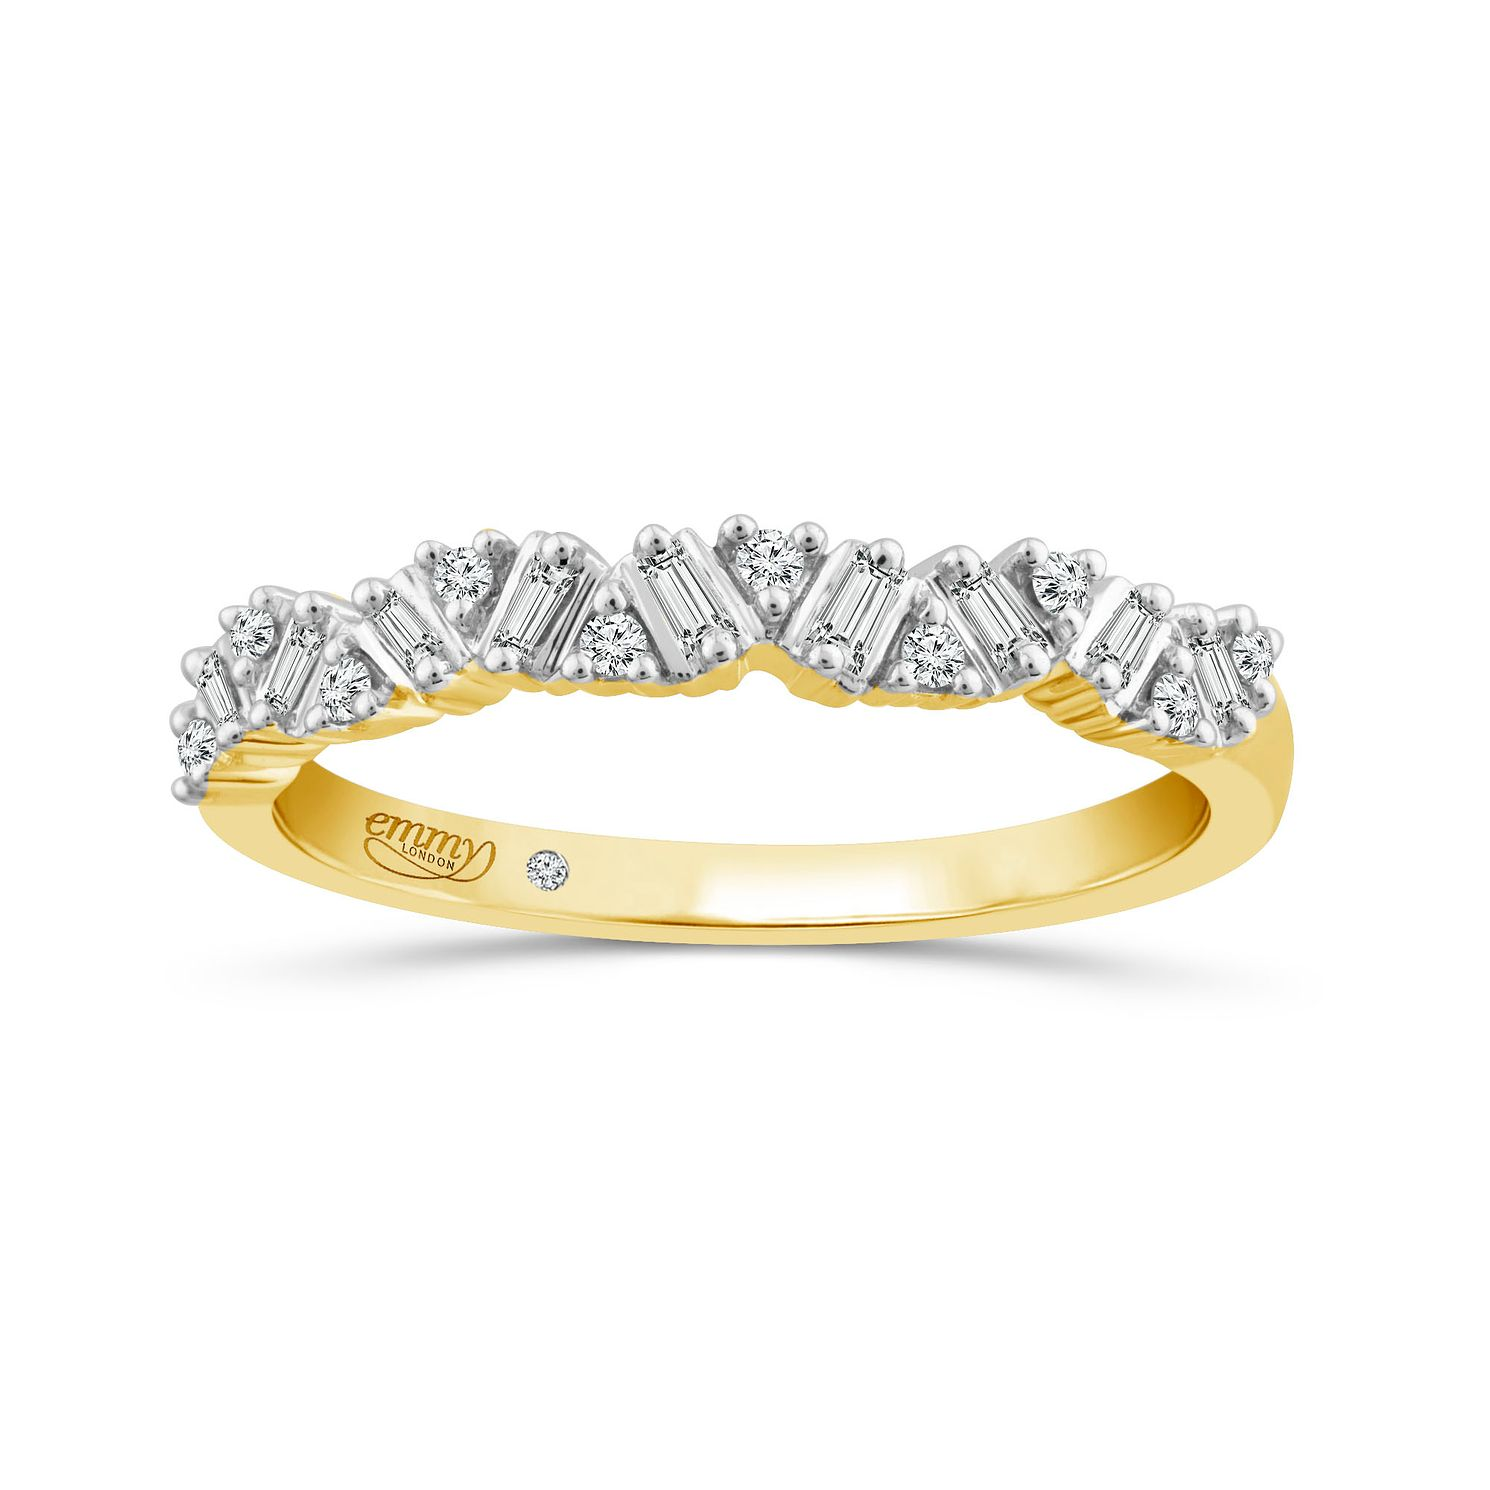 Emmy London 18Ct Yellow Gold 0.12Ct Baguette Diamond Band - Product number 6027199